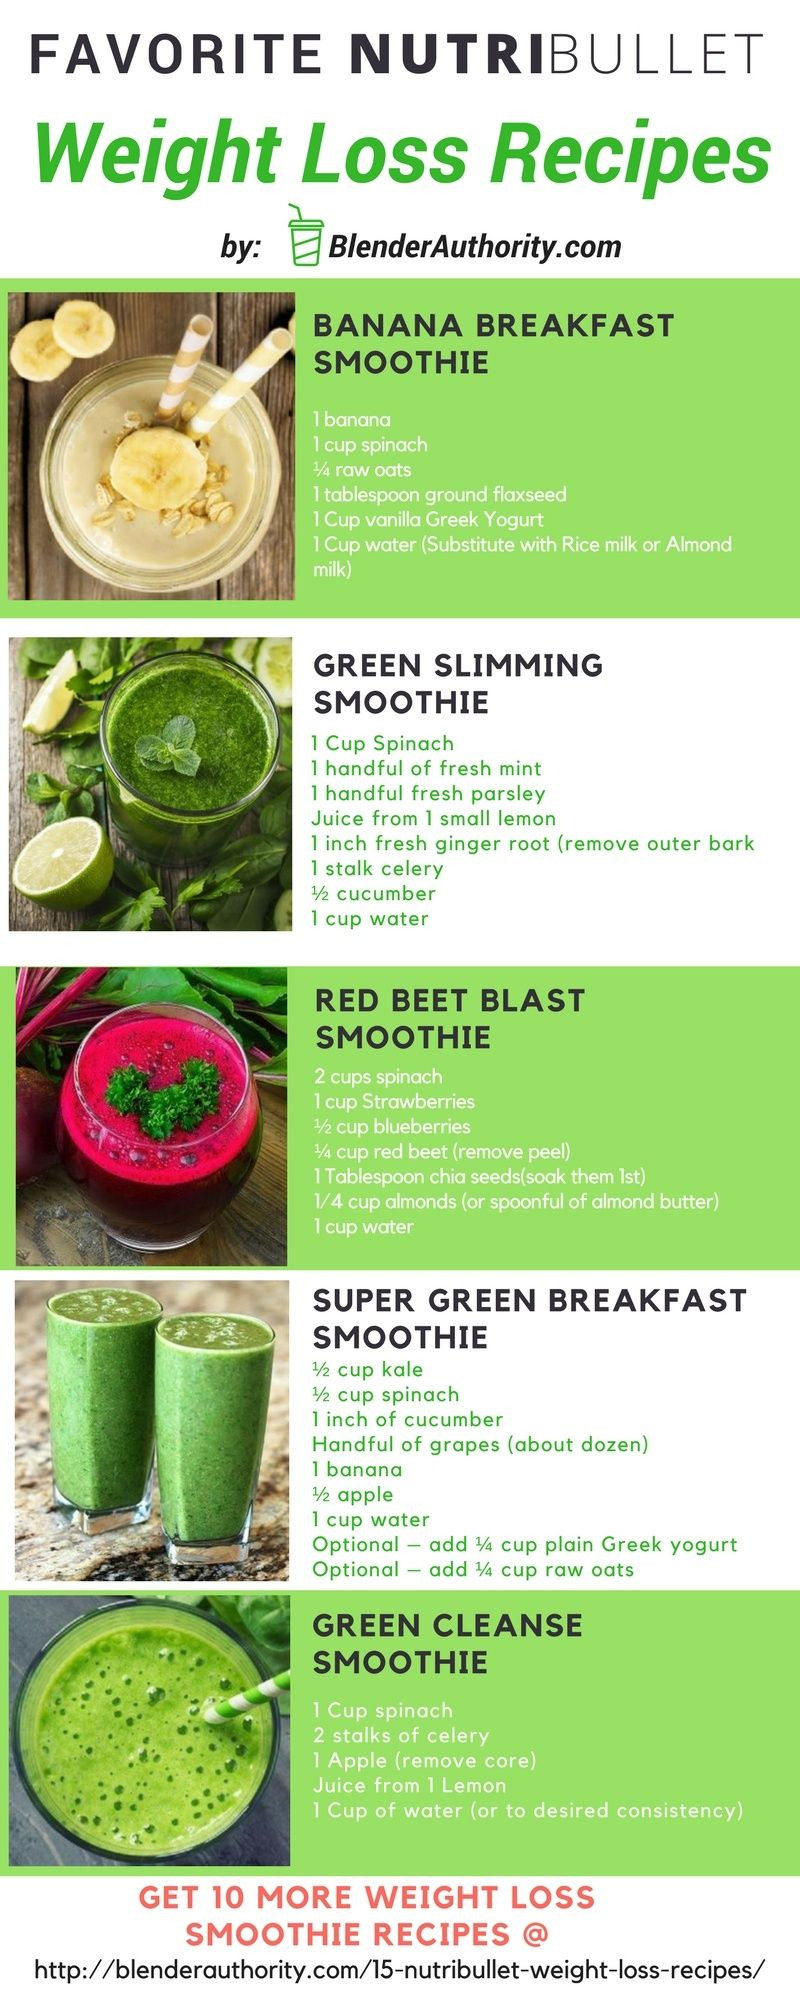 Healthy Green Smoothie Recipes For Weight Loss  15 Nutribullet Weight Loss Recipes